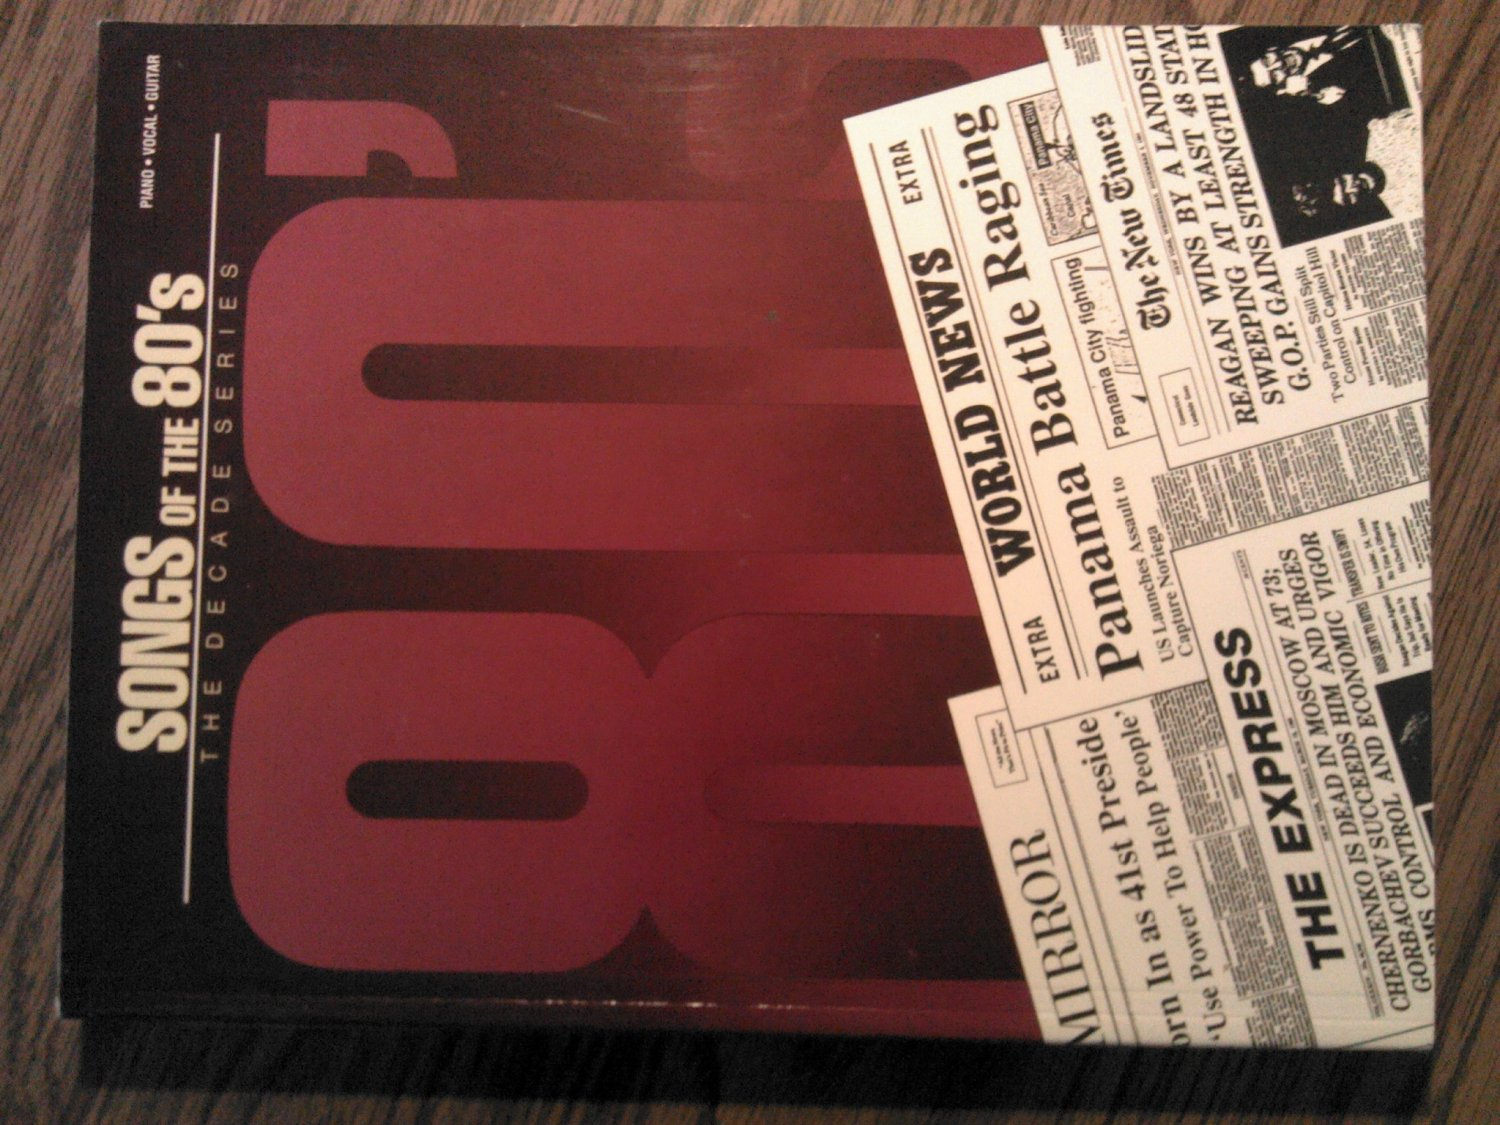 SONGS OF THE 80s SONGBOOK 42 songs piano vocal guitar song book P/V/G